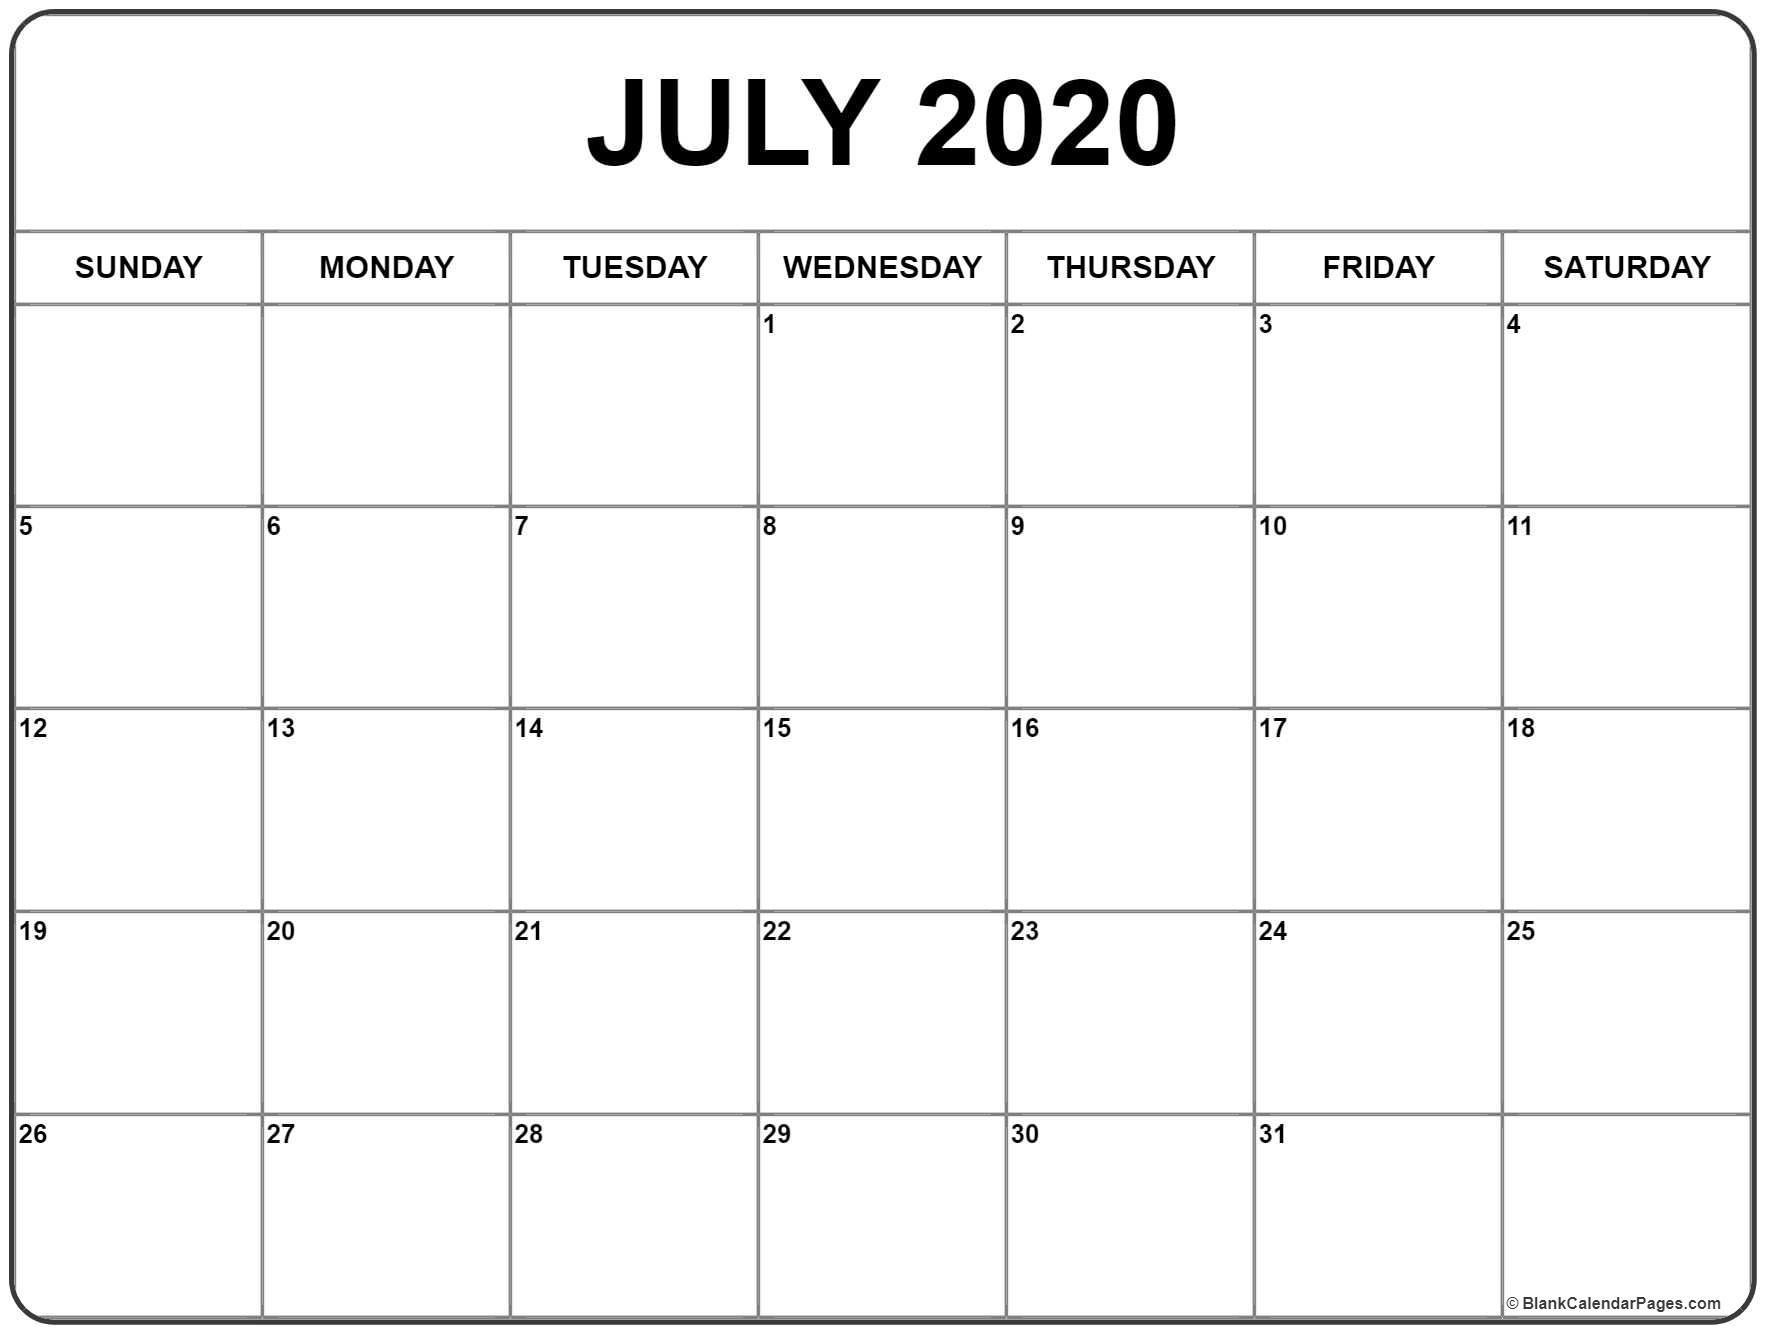 July 2020 Calendar | Free Printable Monthly Calendars-August 2020 Thru December 2020 Calendar Template